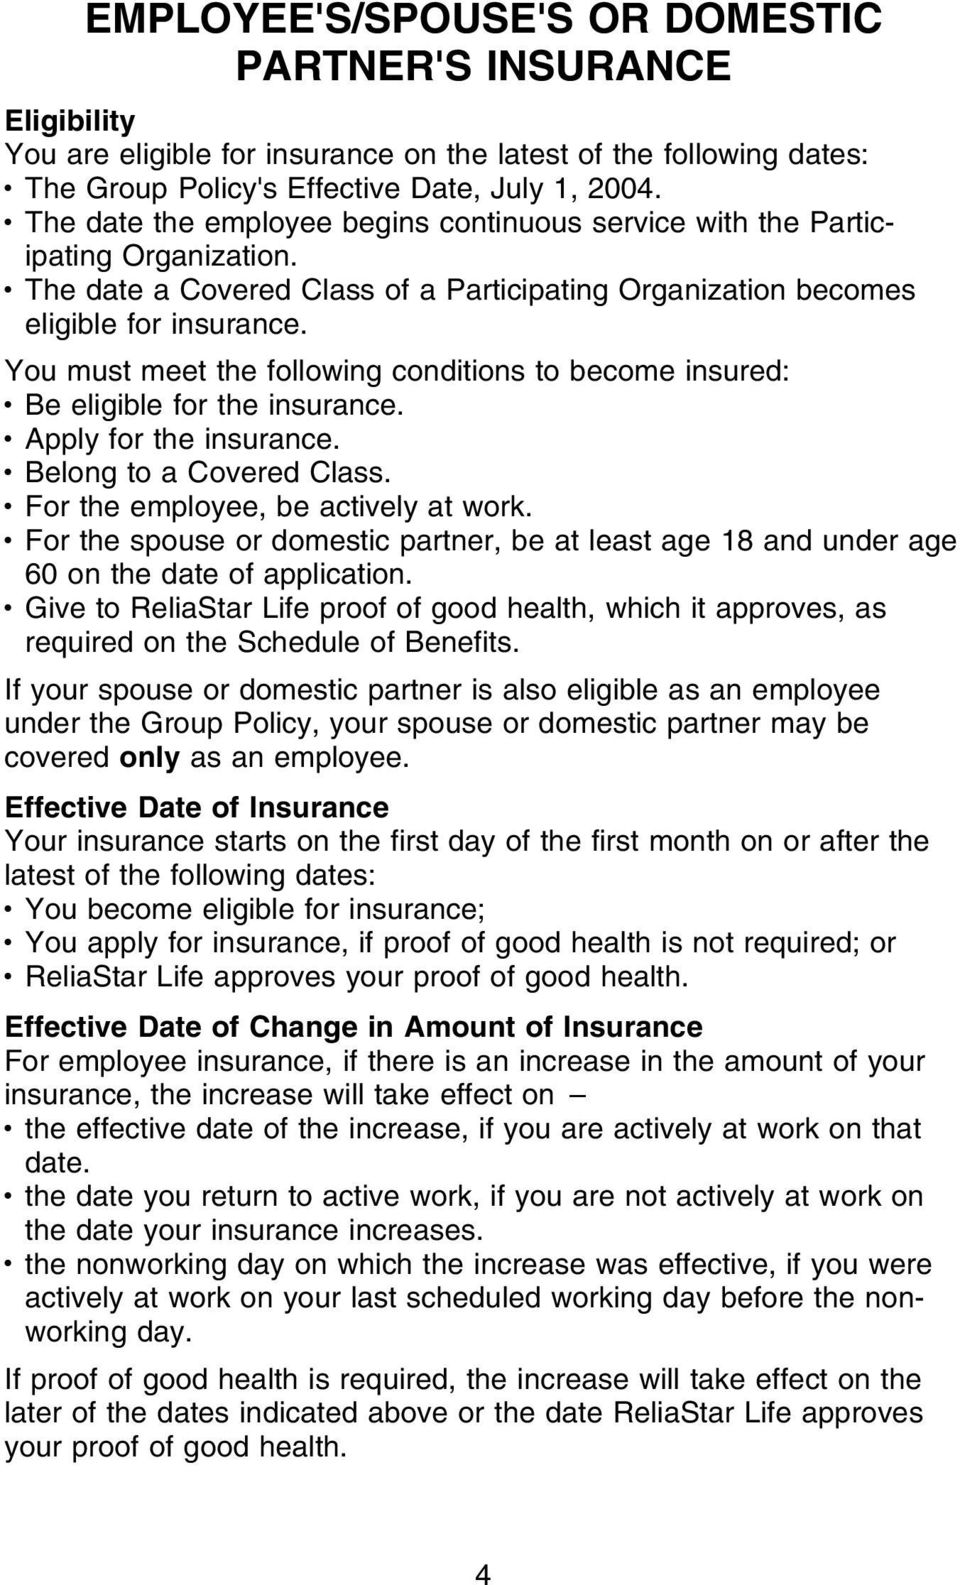 You must meet the following conditions to become insured: Be eligible for the insurance. Apply for the insurance. Belong to a Covered Class. For the employee, be actively at work.